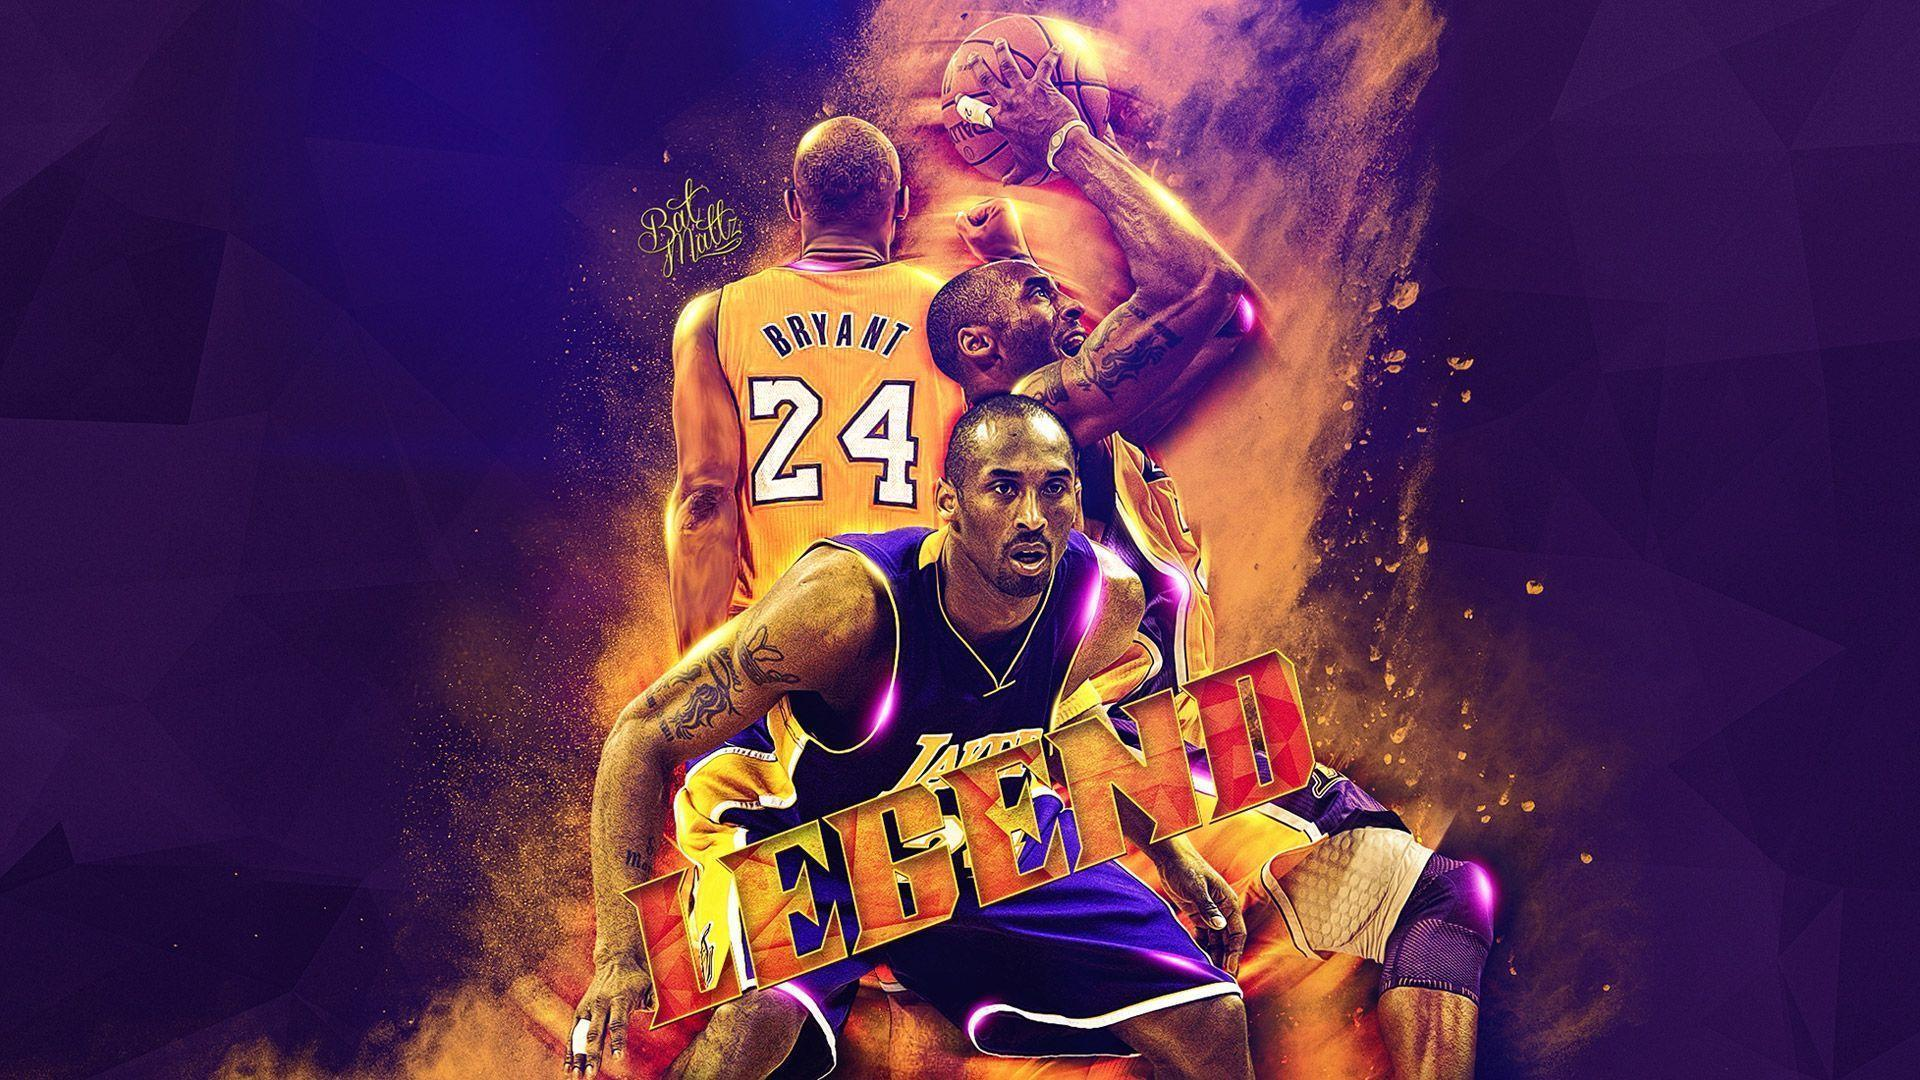 hd pictures of kobe